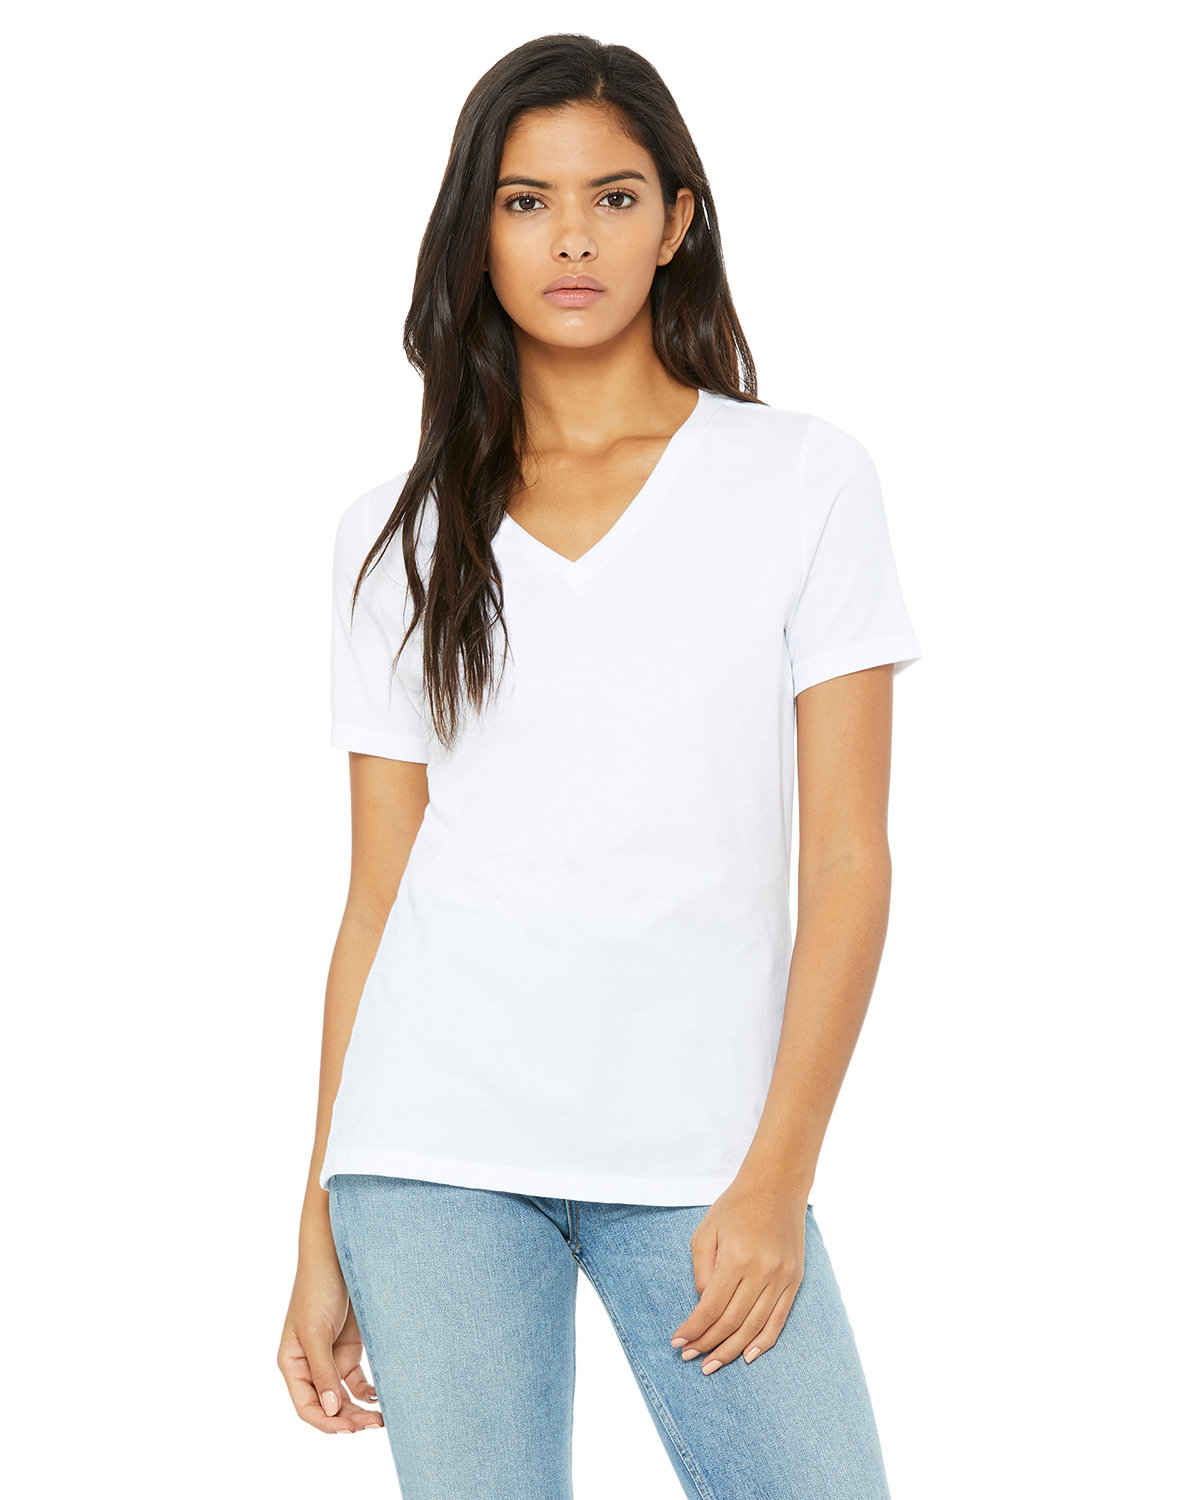 Bella + Canvas Ladies' Relaxed Jersey V-Neck T-Shirt WHITE